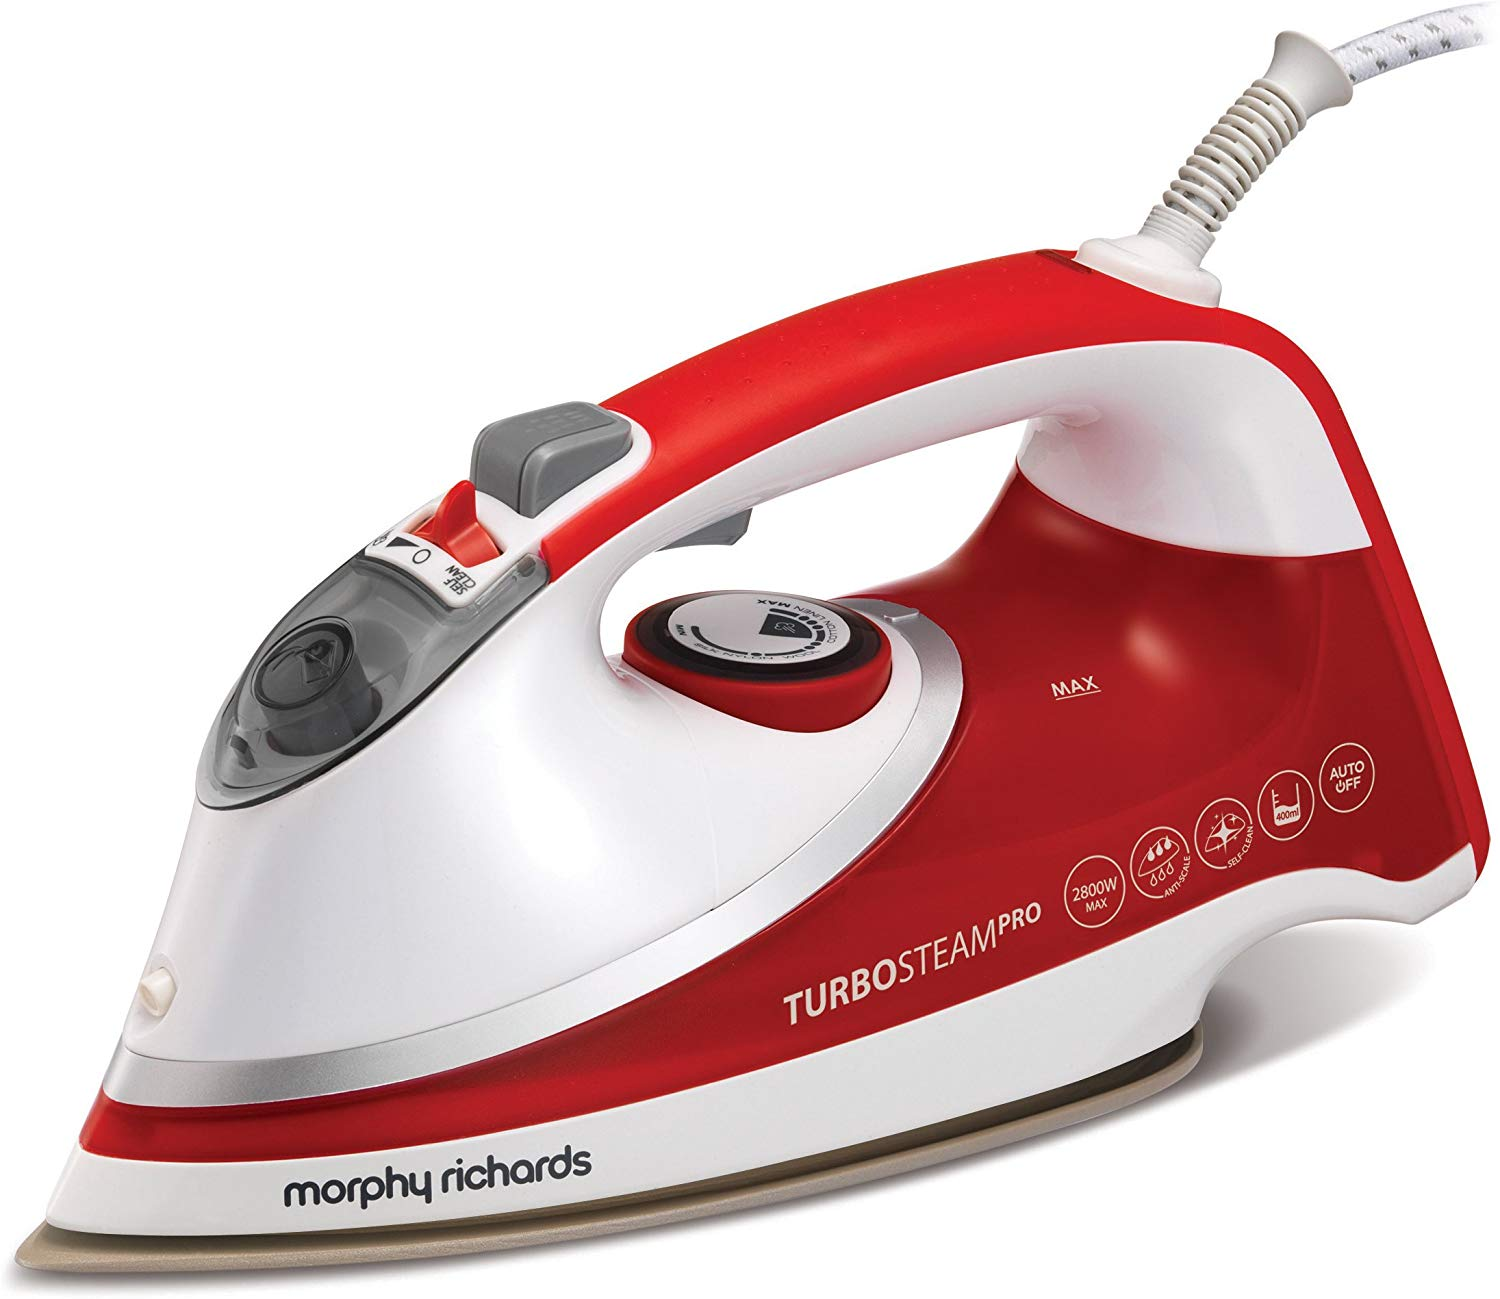 Morphy Richard's steam Iron guide